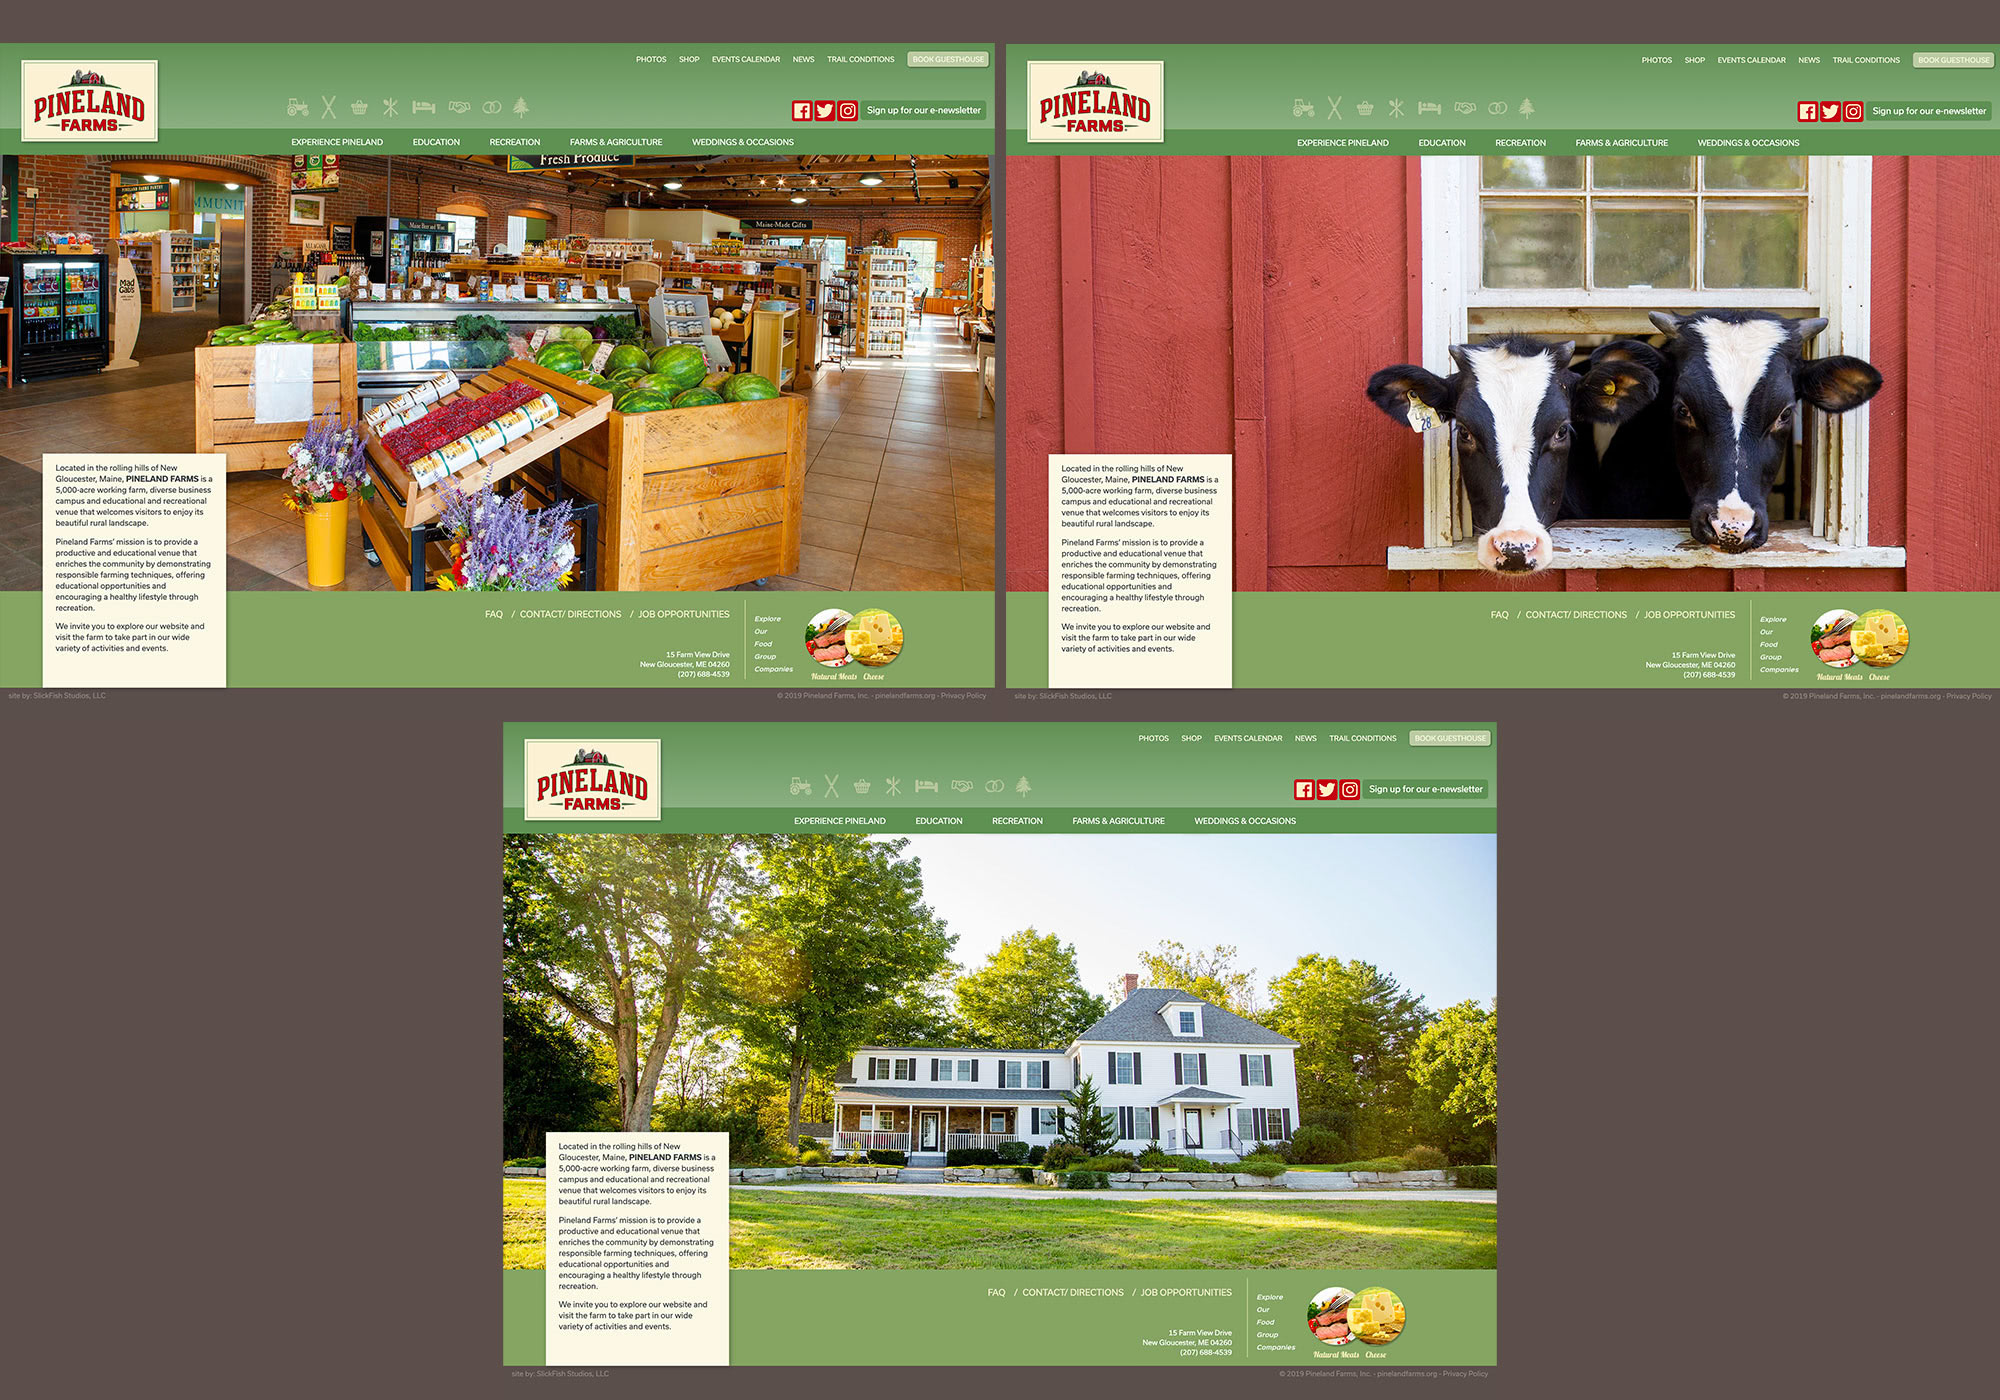 A website for a working farm and diverse business and education campus in Maine.